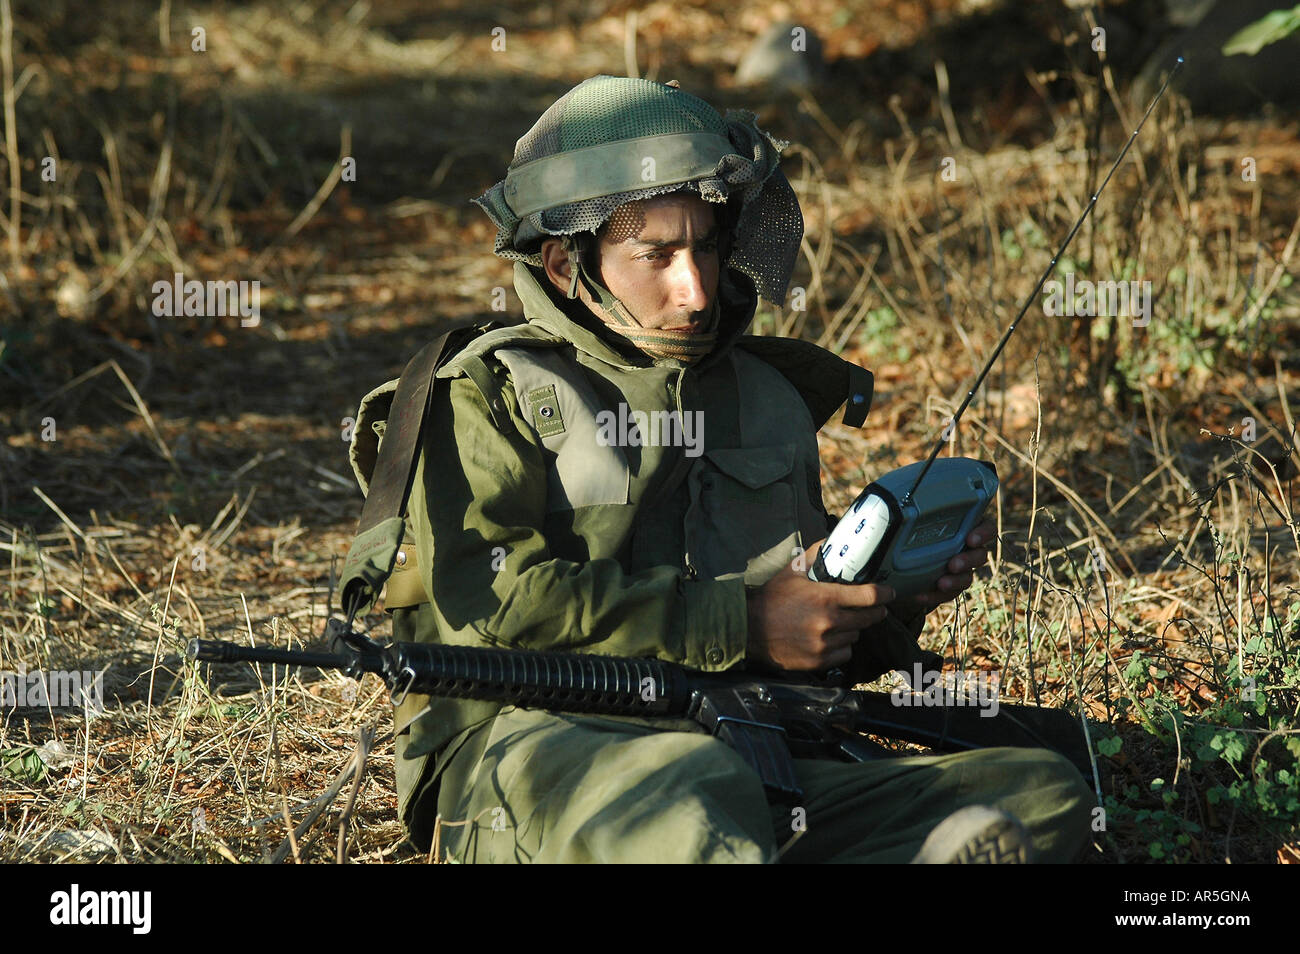 An Israeli soldier listening to a portable radio at the Lebanon border on the last day of Israel Hezbullah war in 2006 - Stock Image